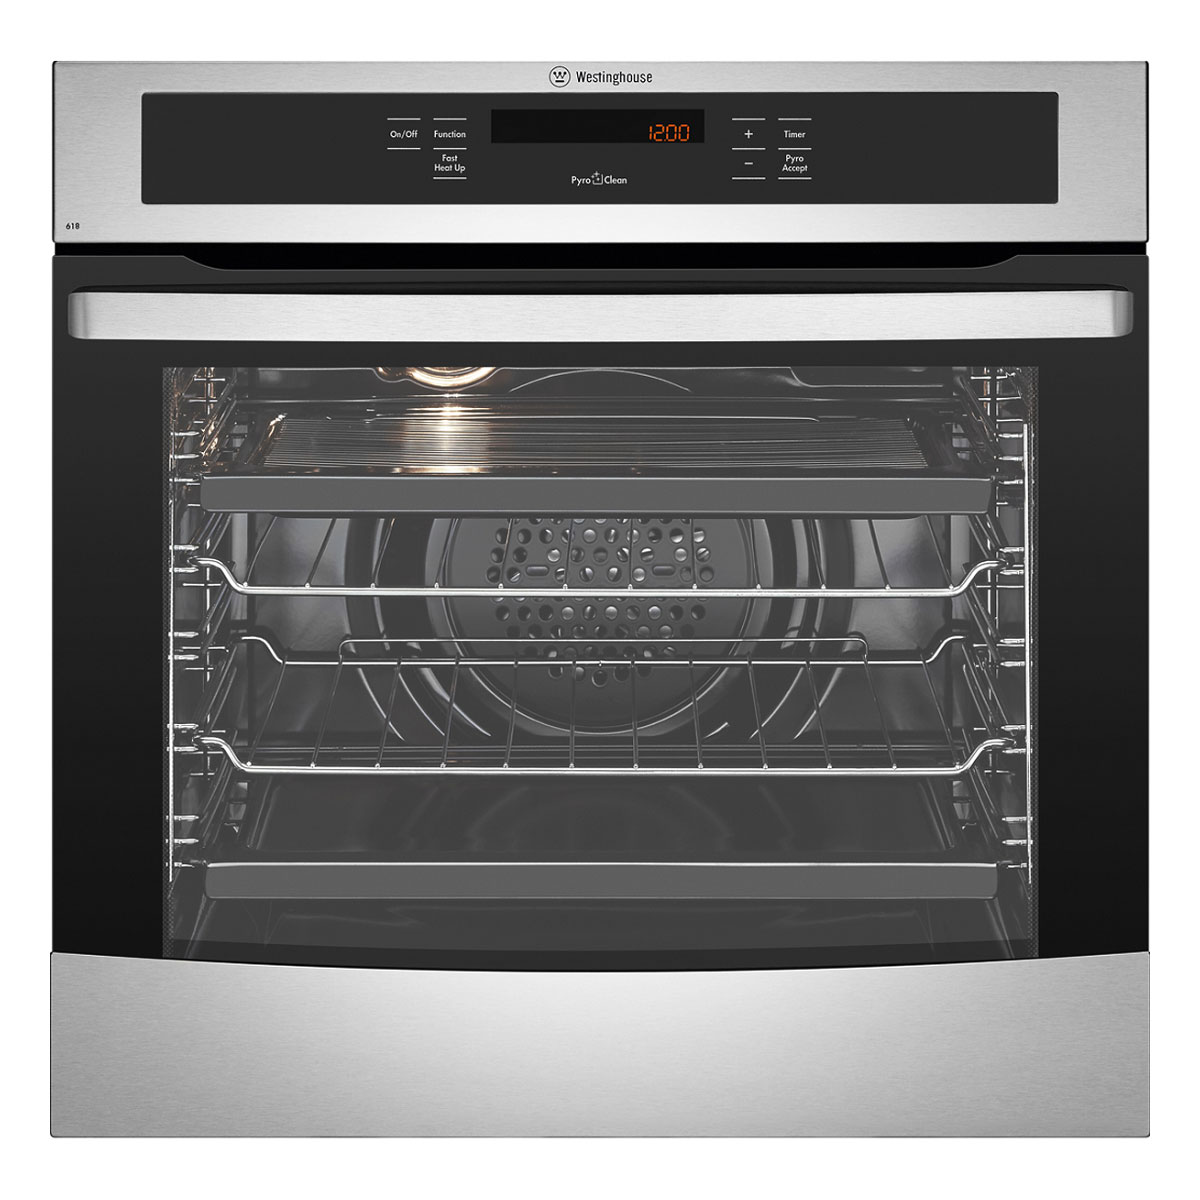 Westinghouse WVEP618S Pyrolytic Built-In Oven 27705